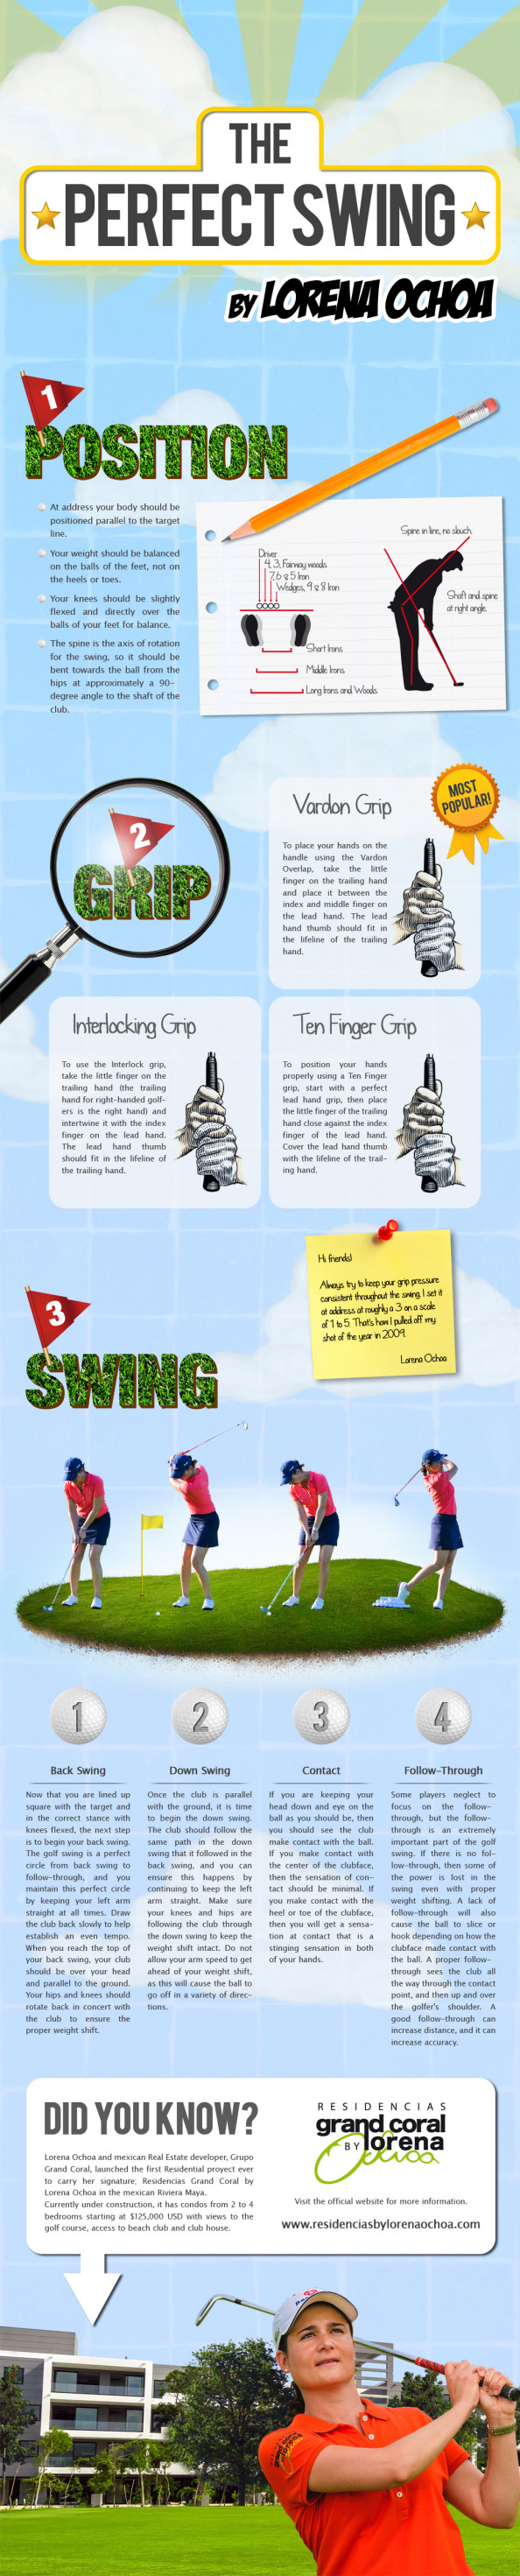 The Perfect Swing by Lorena Ochoa Infographic